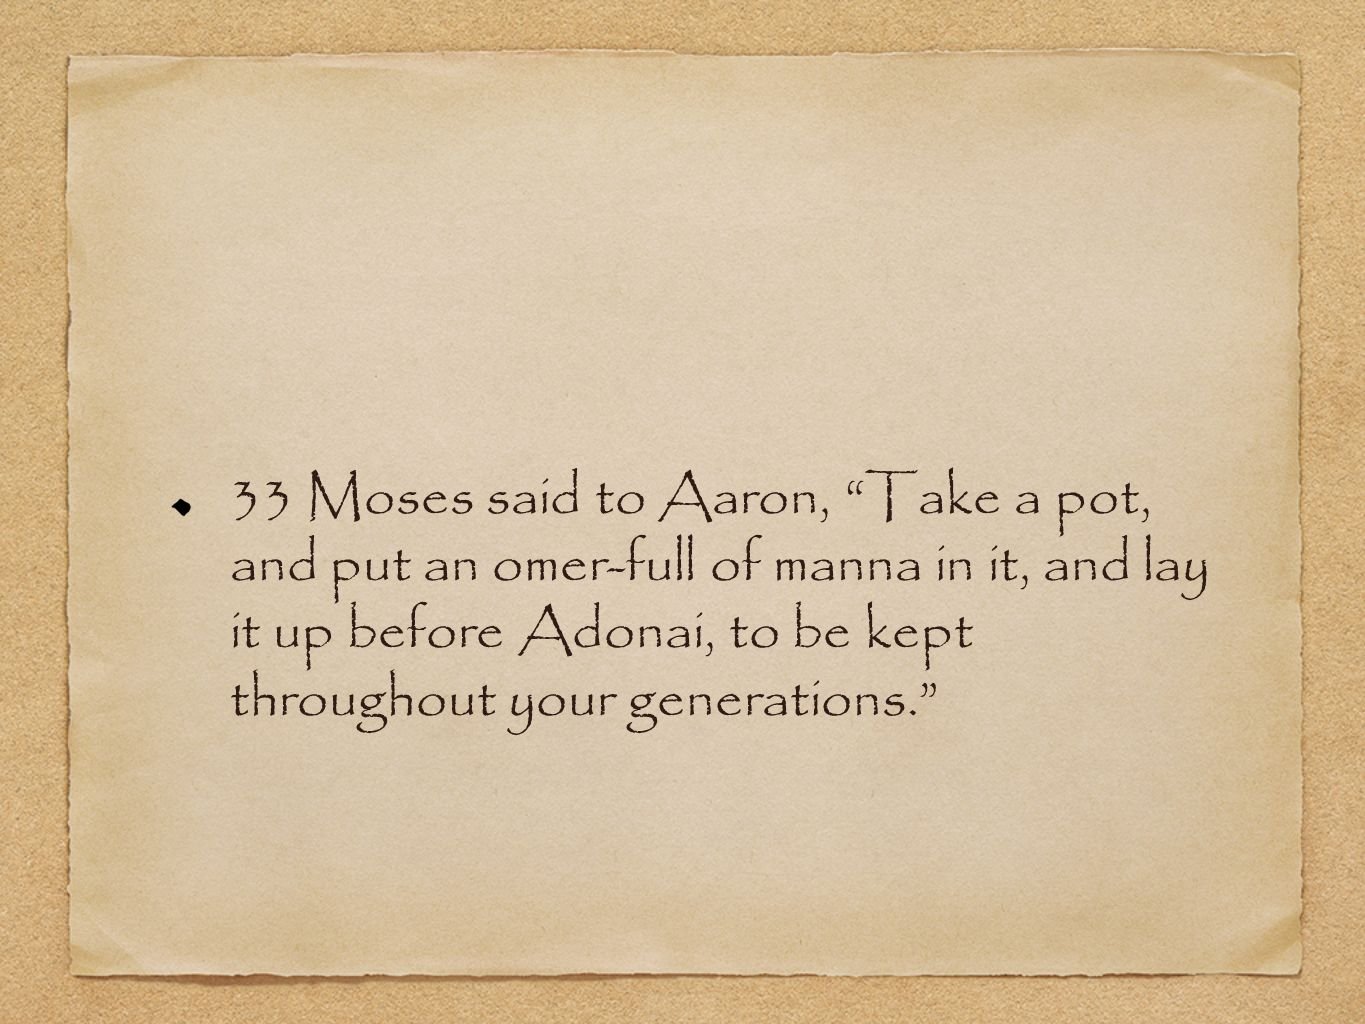 33 Moses said to Aaron, Take a pot, and put an omer-full of manna in it, and lay it up before Adonai, to be kept throughout your generations.